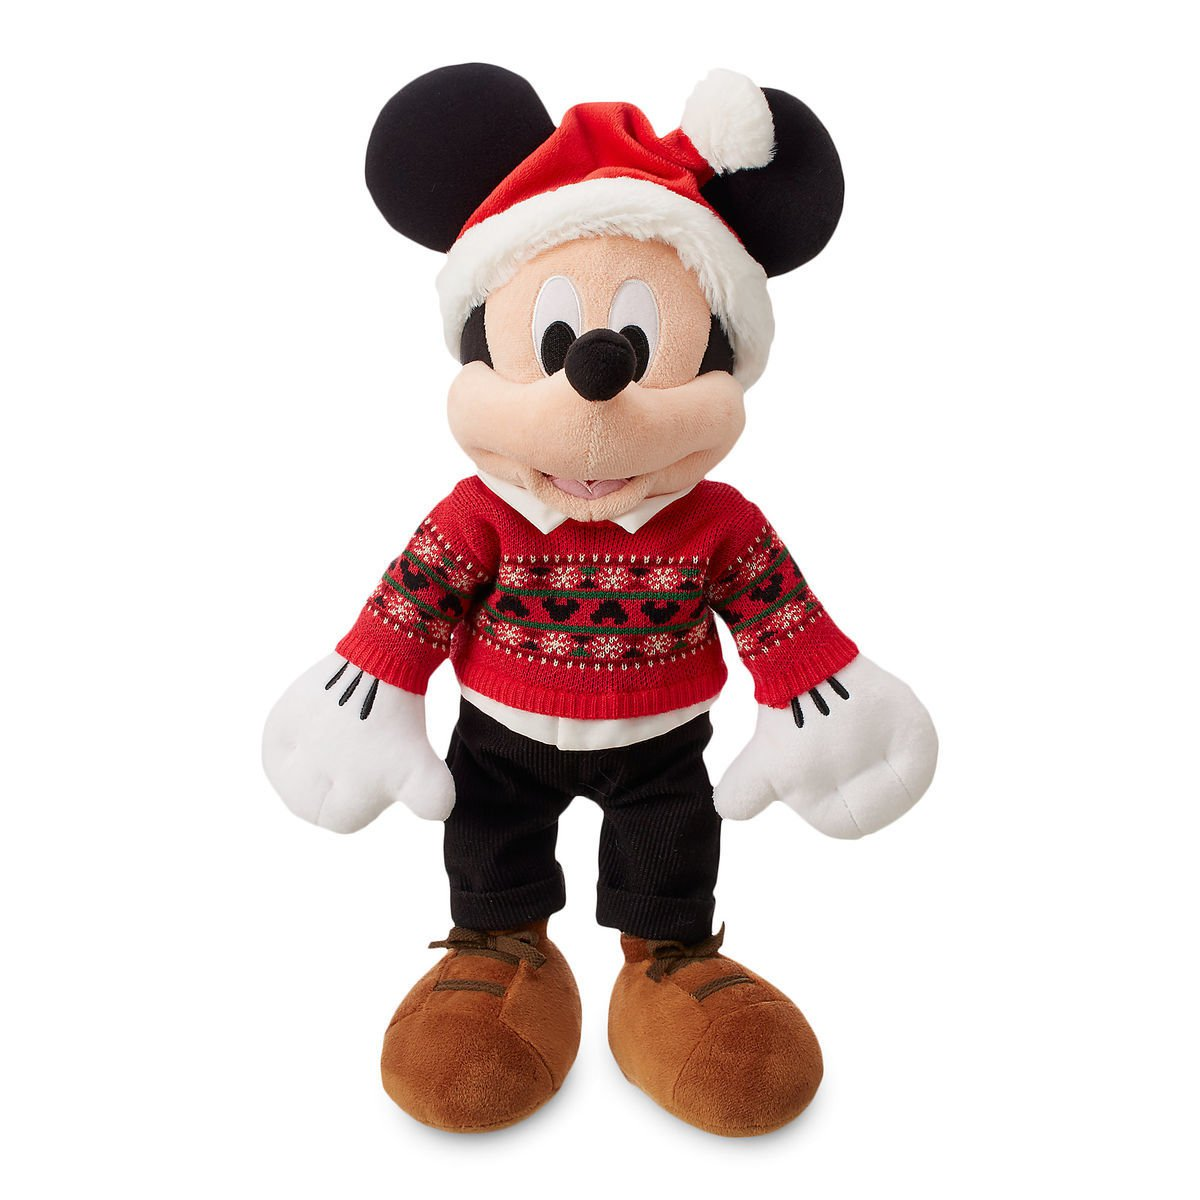 Disney Store Mickey Mouse Christmas Plush Toy Exclusive 2018 Limited New